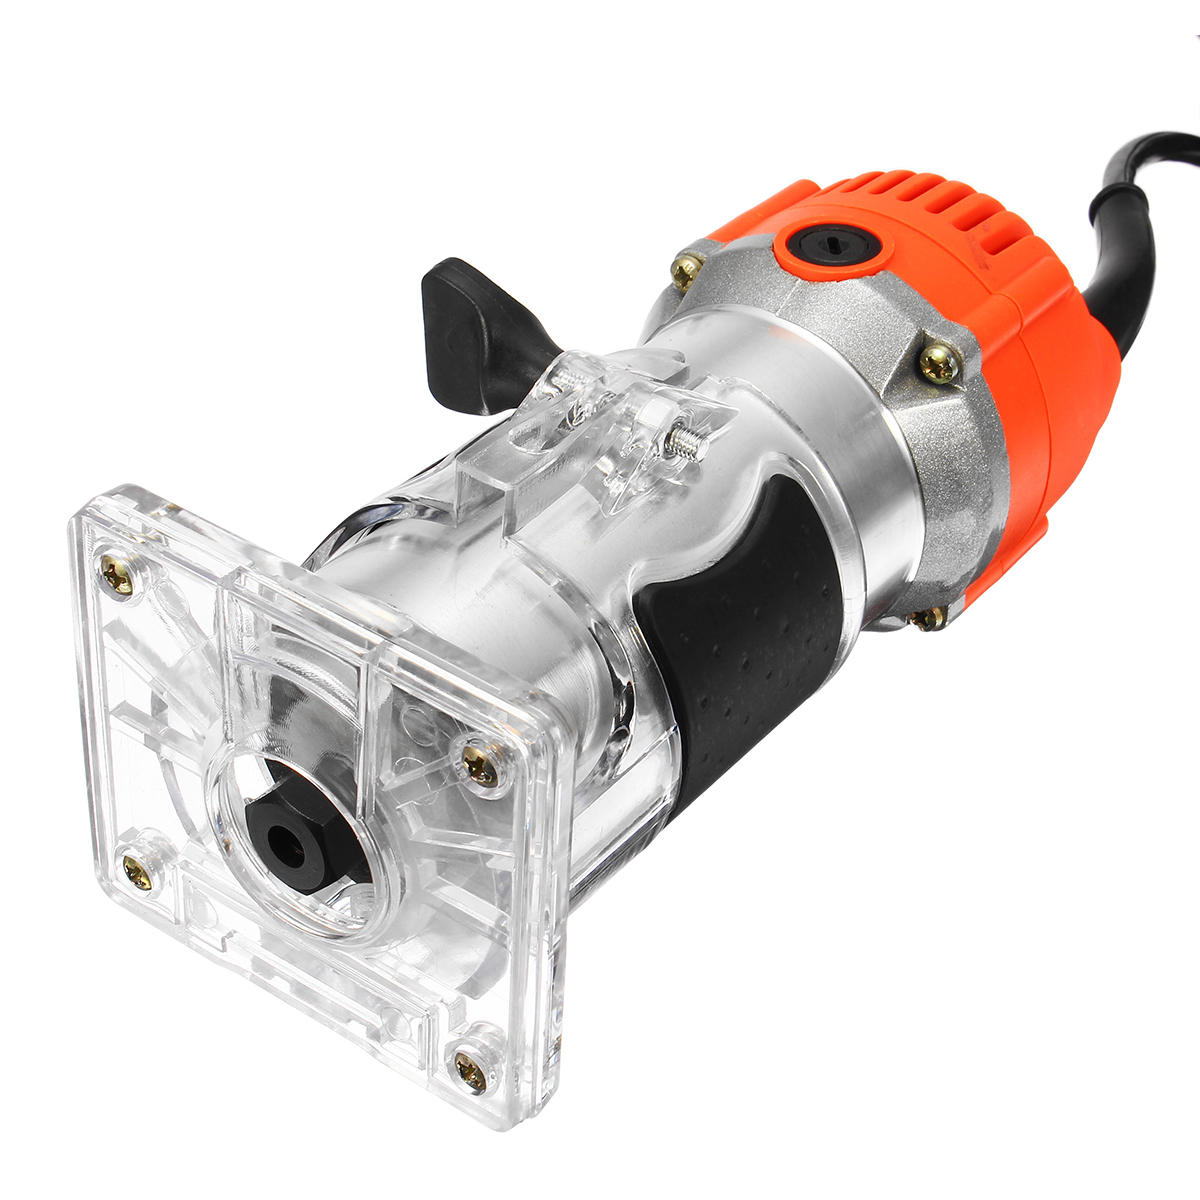 Raitool® 800W 30000RMP Electric Hand Trimmer 1/4 Inch Corded Wood Laminate Palm Router